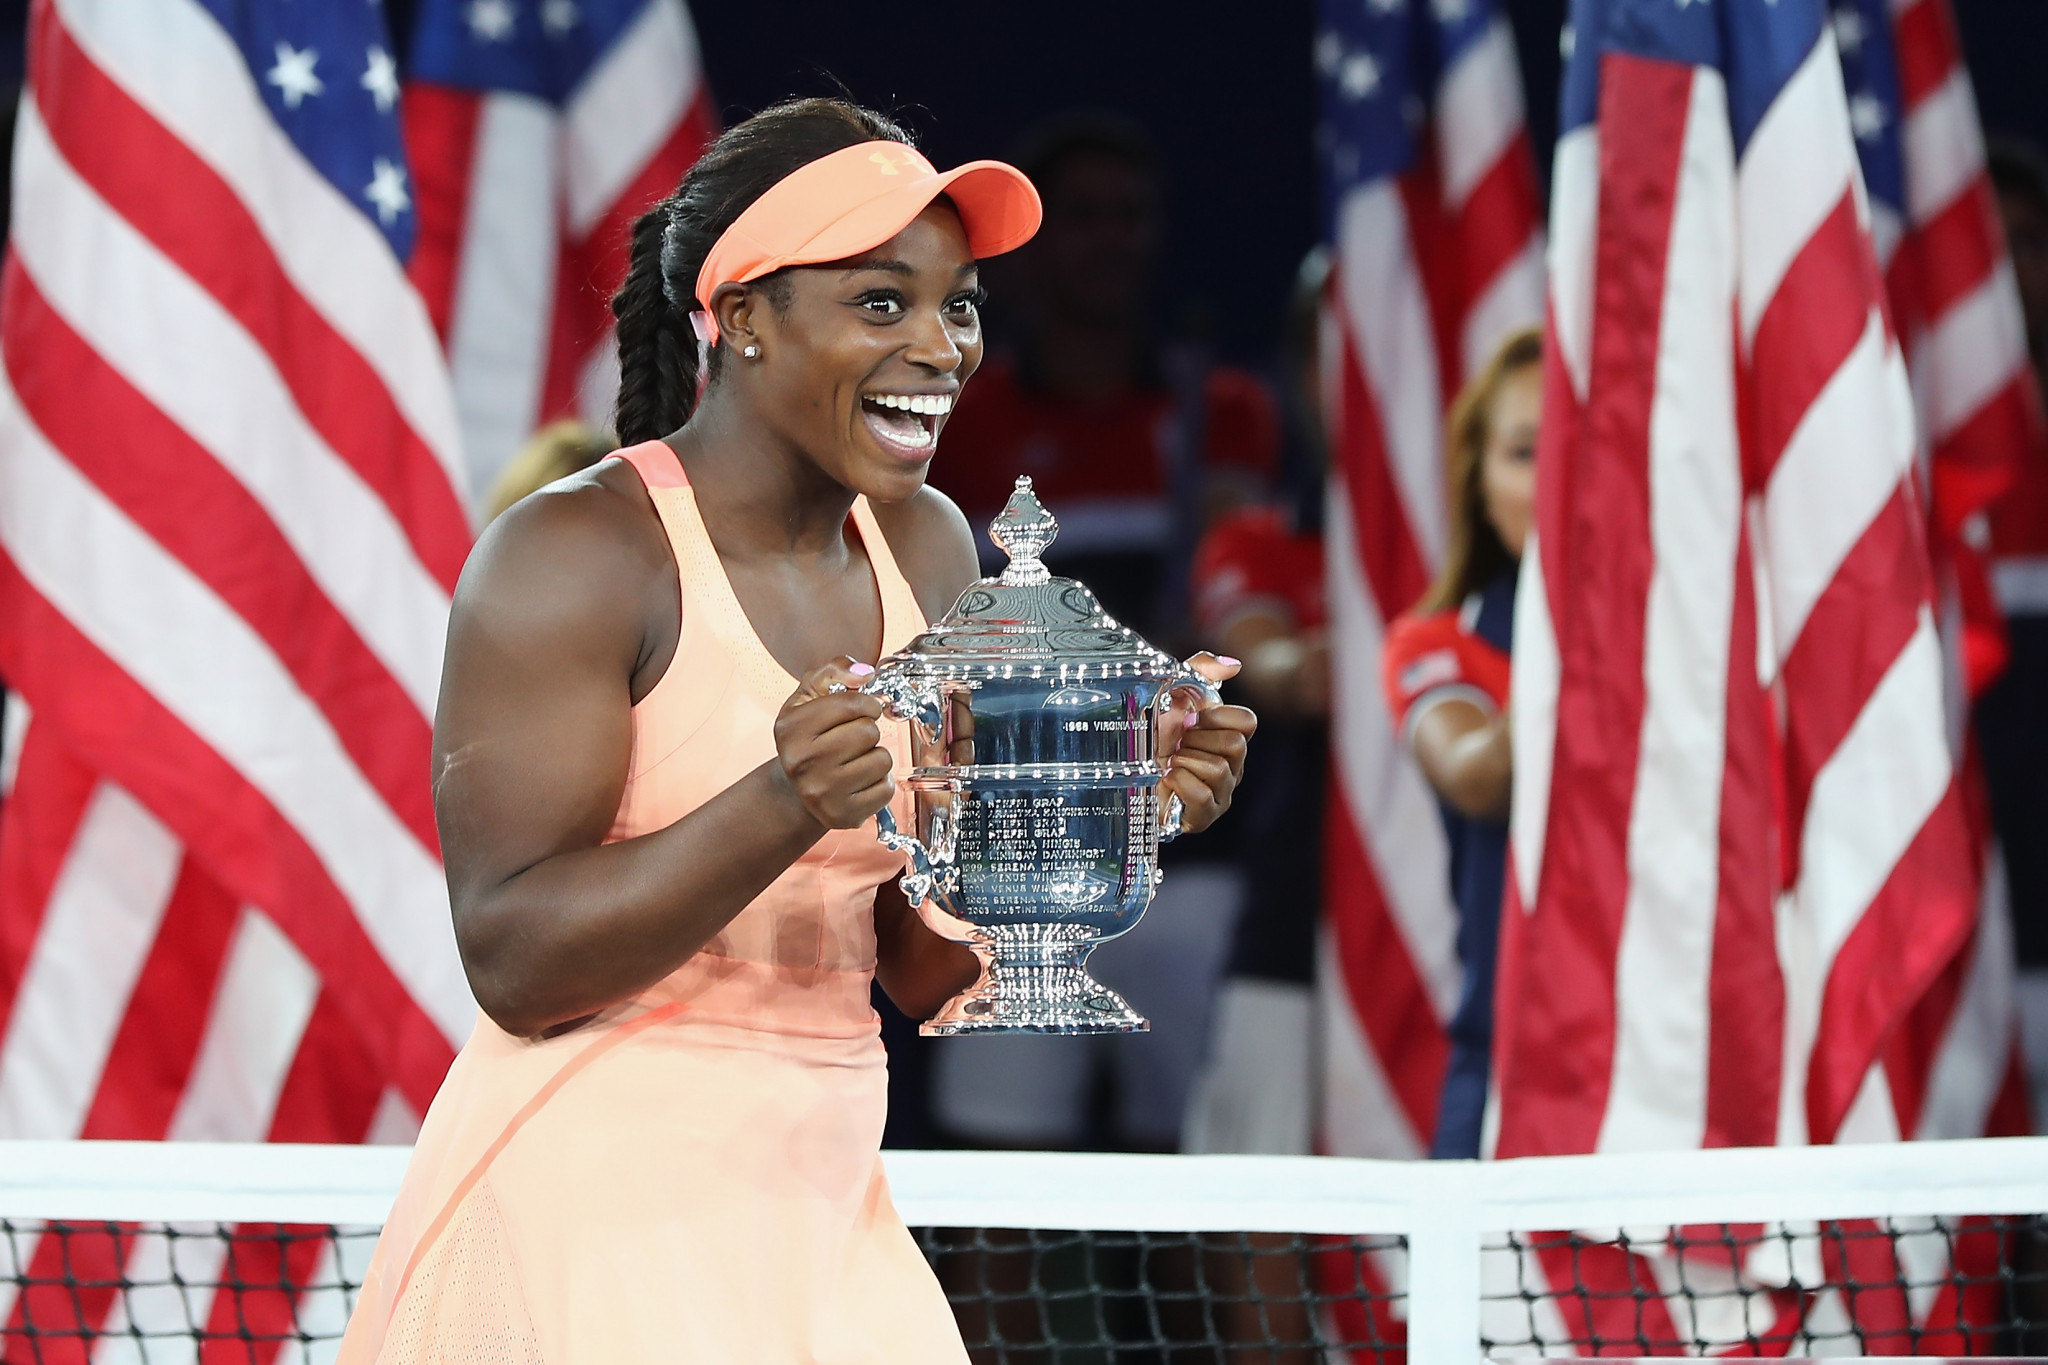 Sloane Stephens is among the women's nominees ©Getty Images